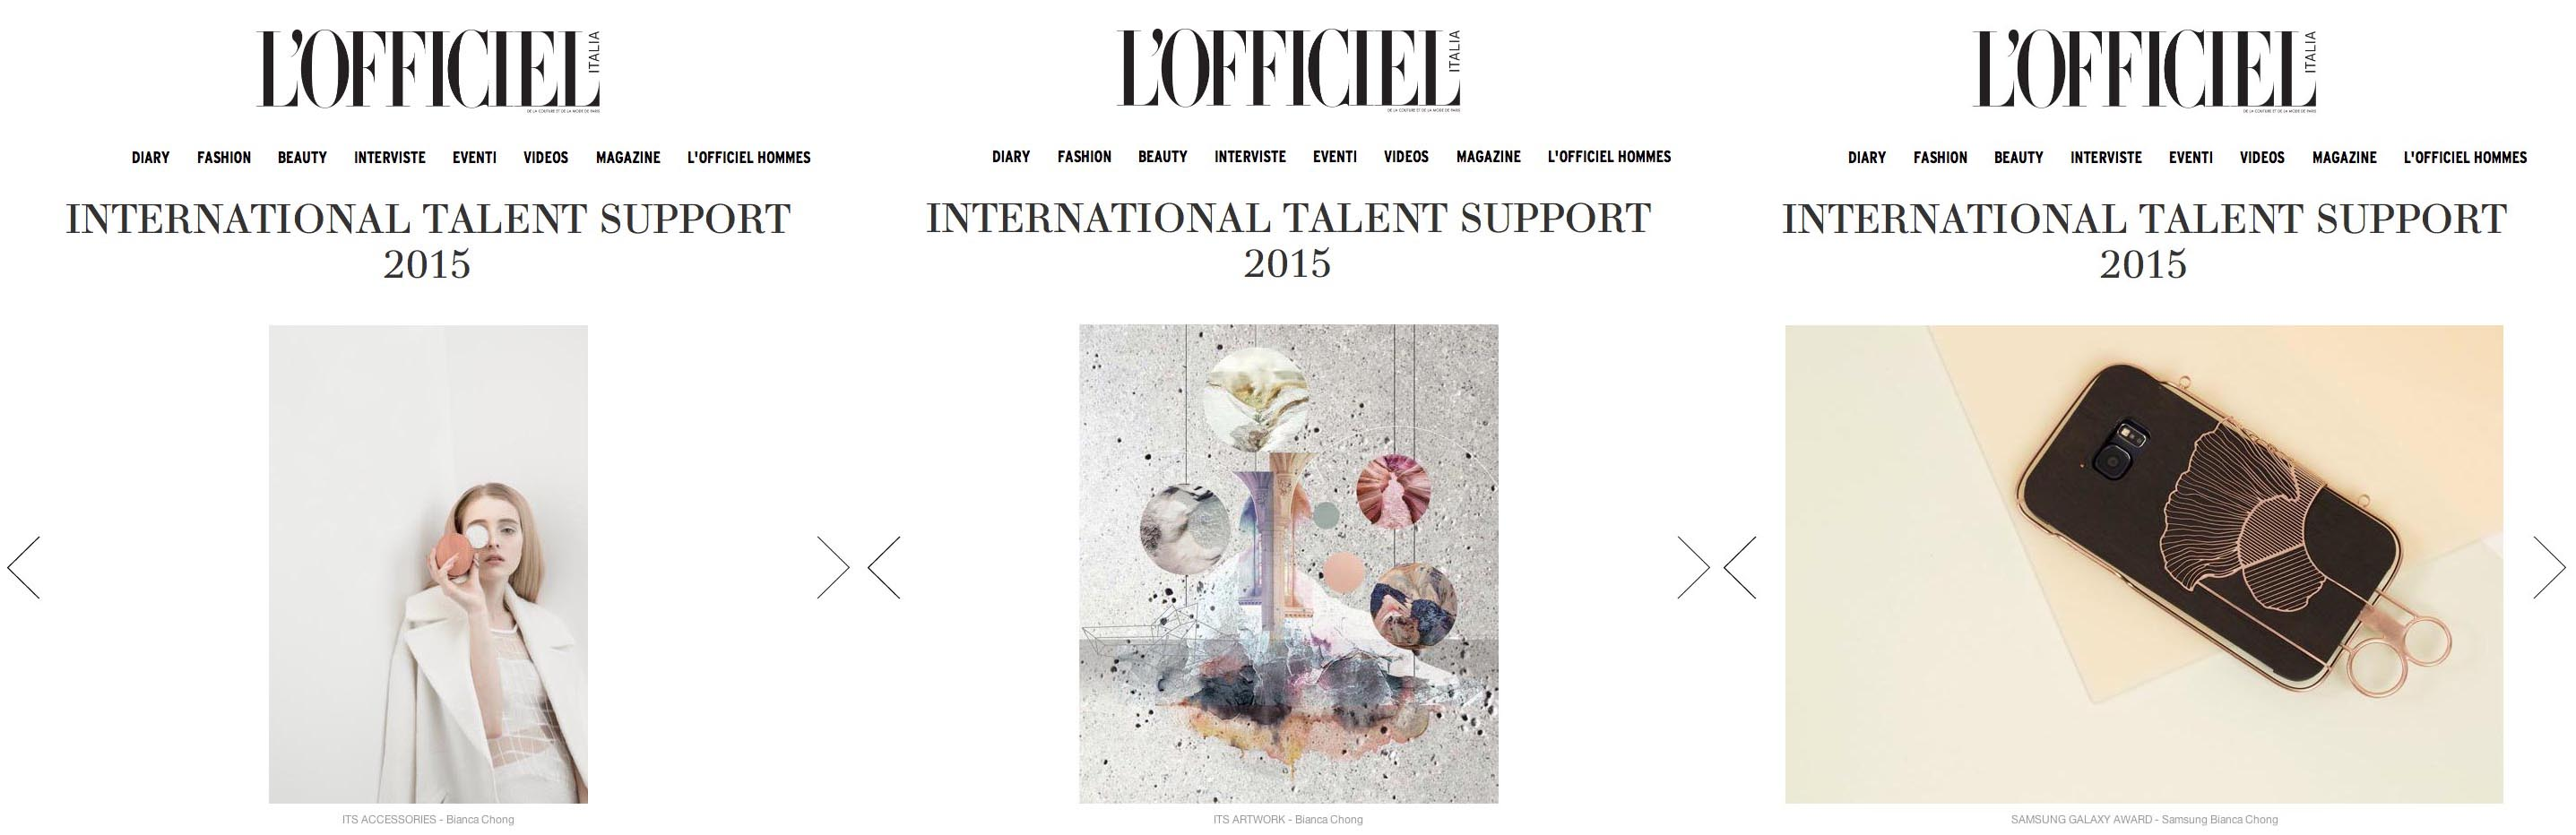 l'officiel italia group.jpg